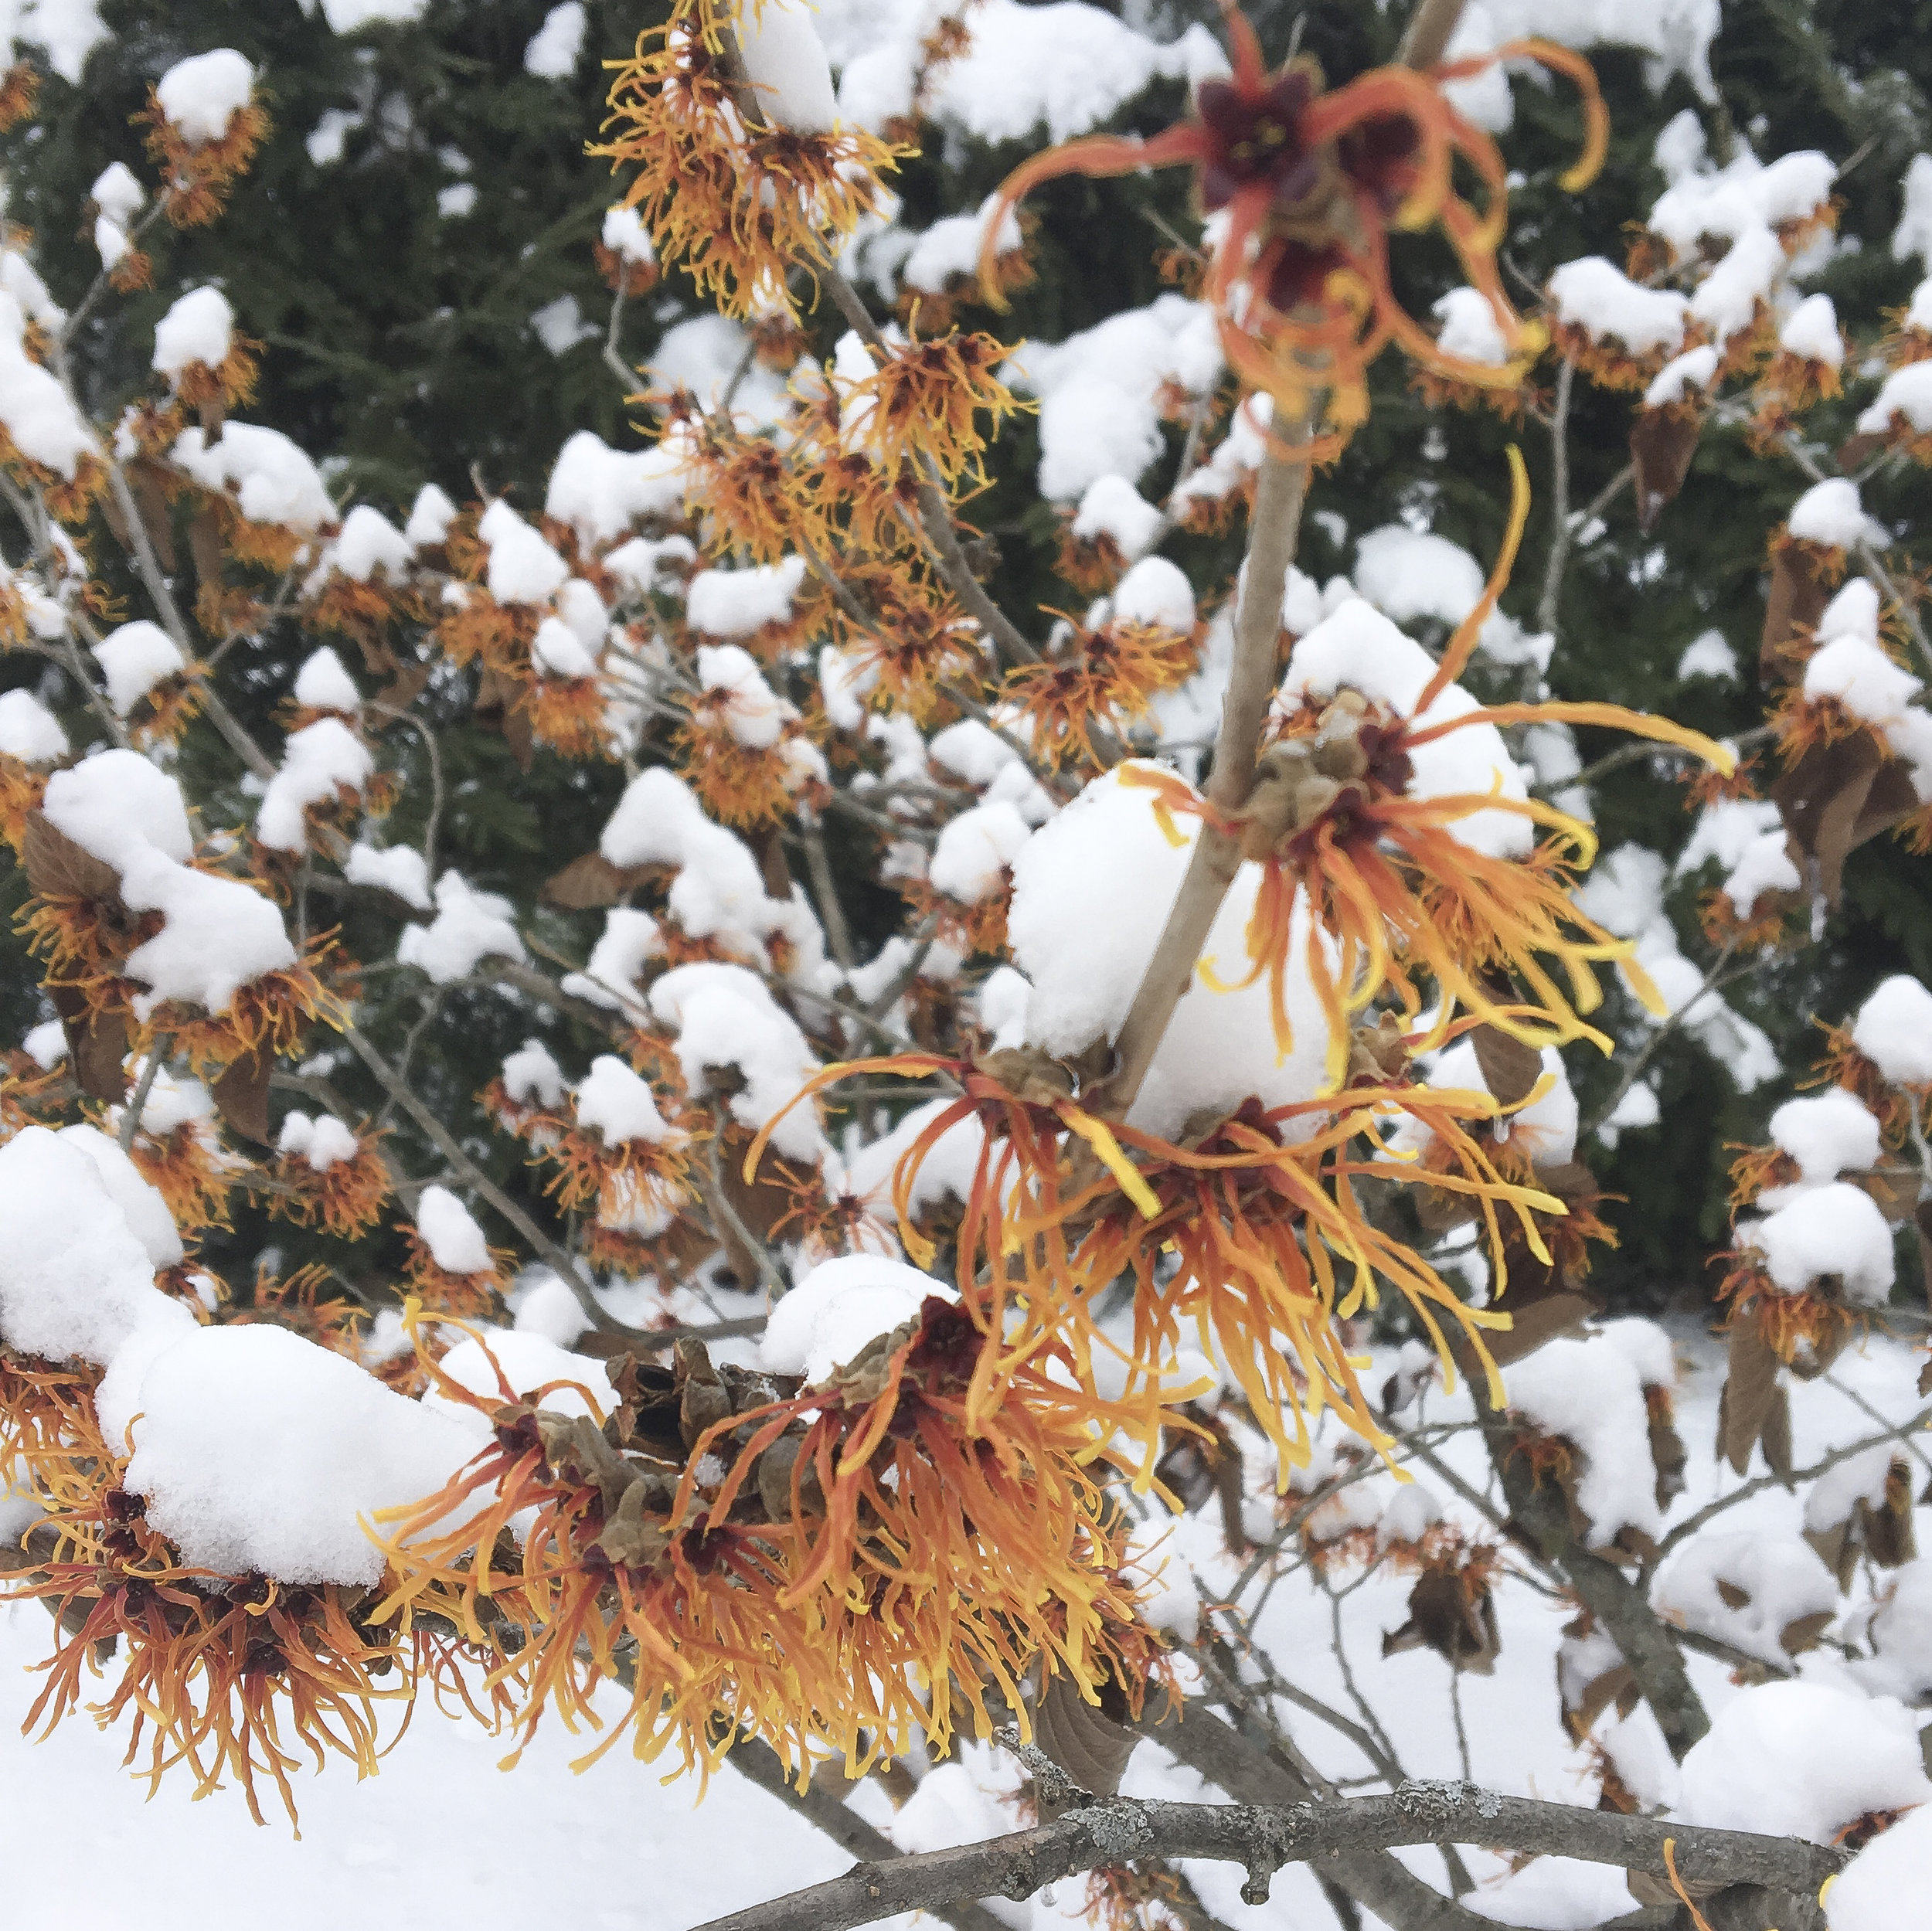 Witchhazel - The snow-covered flowers of the Winter blooming Jelena Witchhazel, Hamamelis x intermedia 'Jelena.'